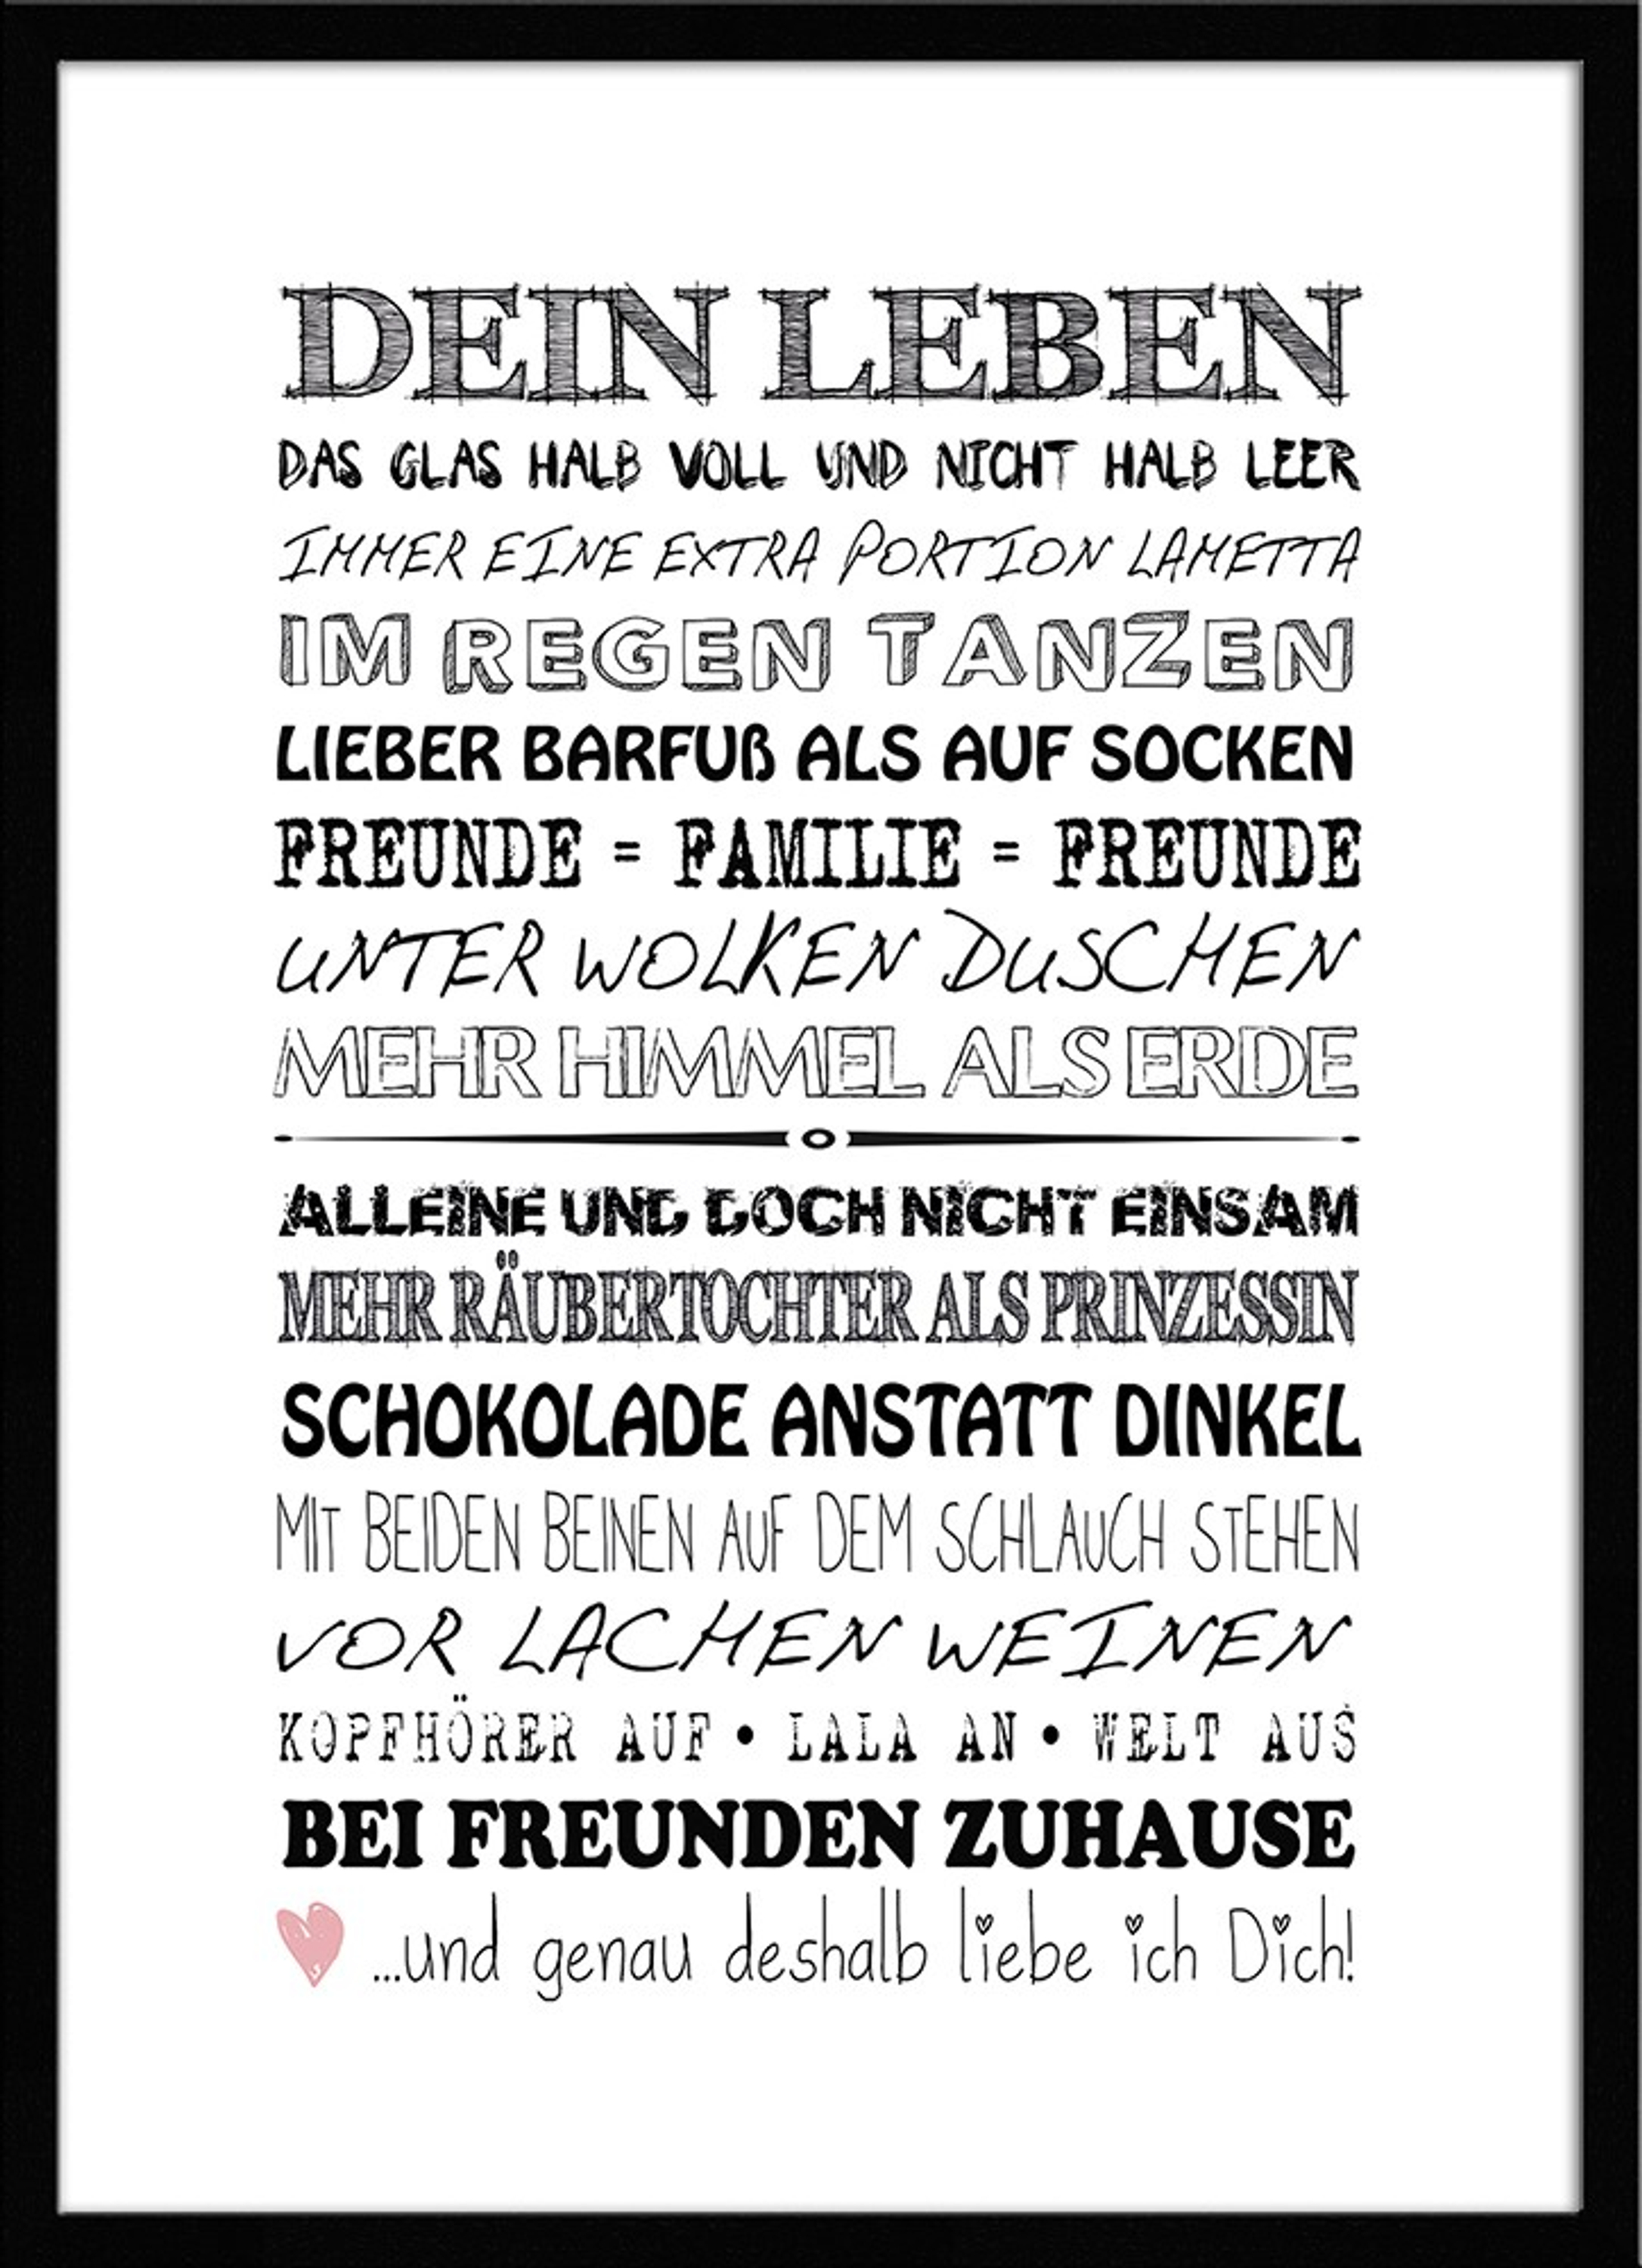 artissimo spruch bild gerahmt 51x71cm poster kunstdruck spr che wandbild rahmen ebay. Black Bedroom Furniture Sets. Home Design Ideas